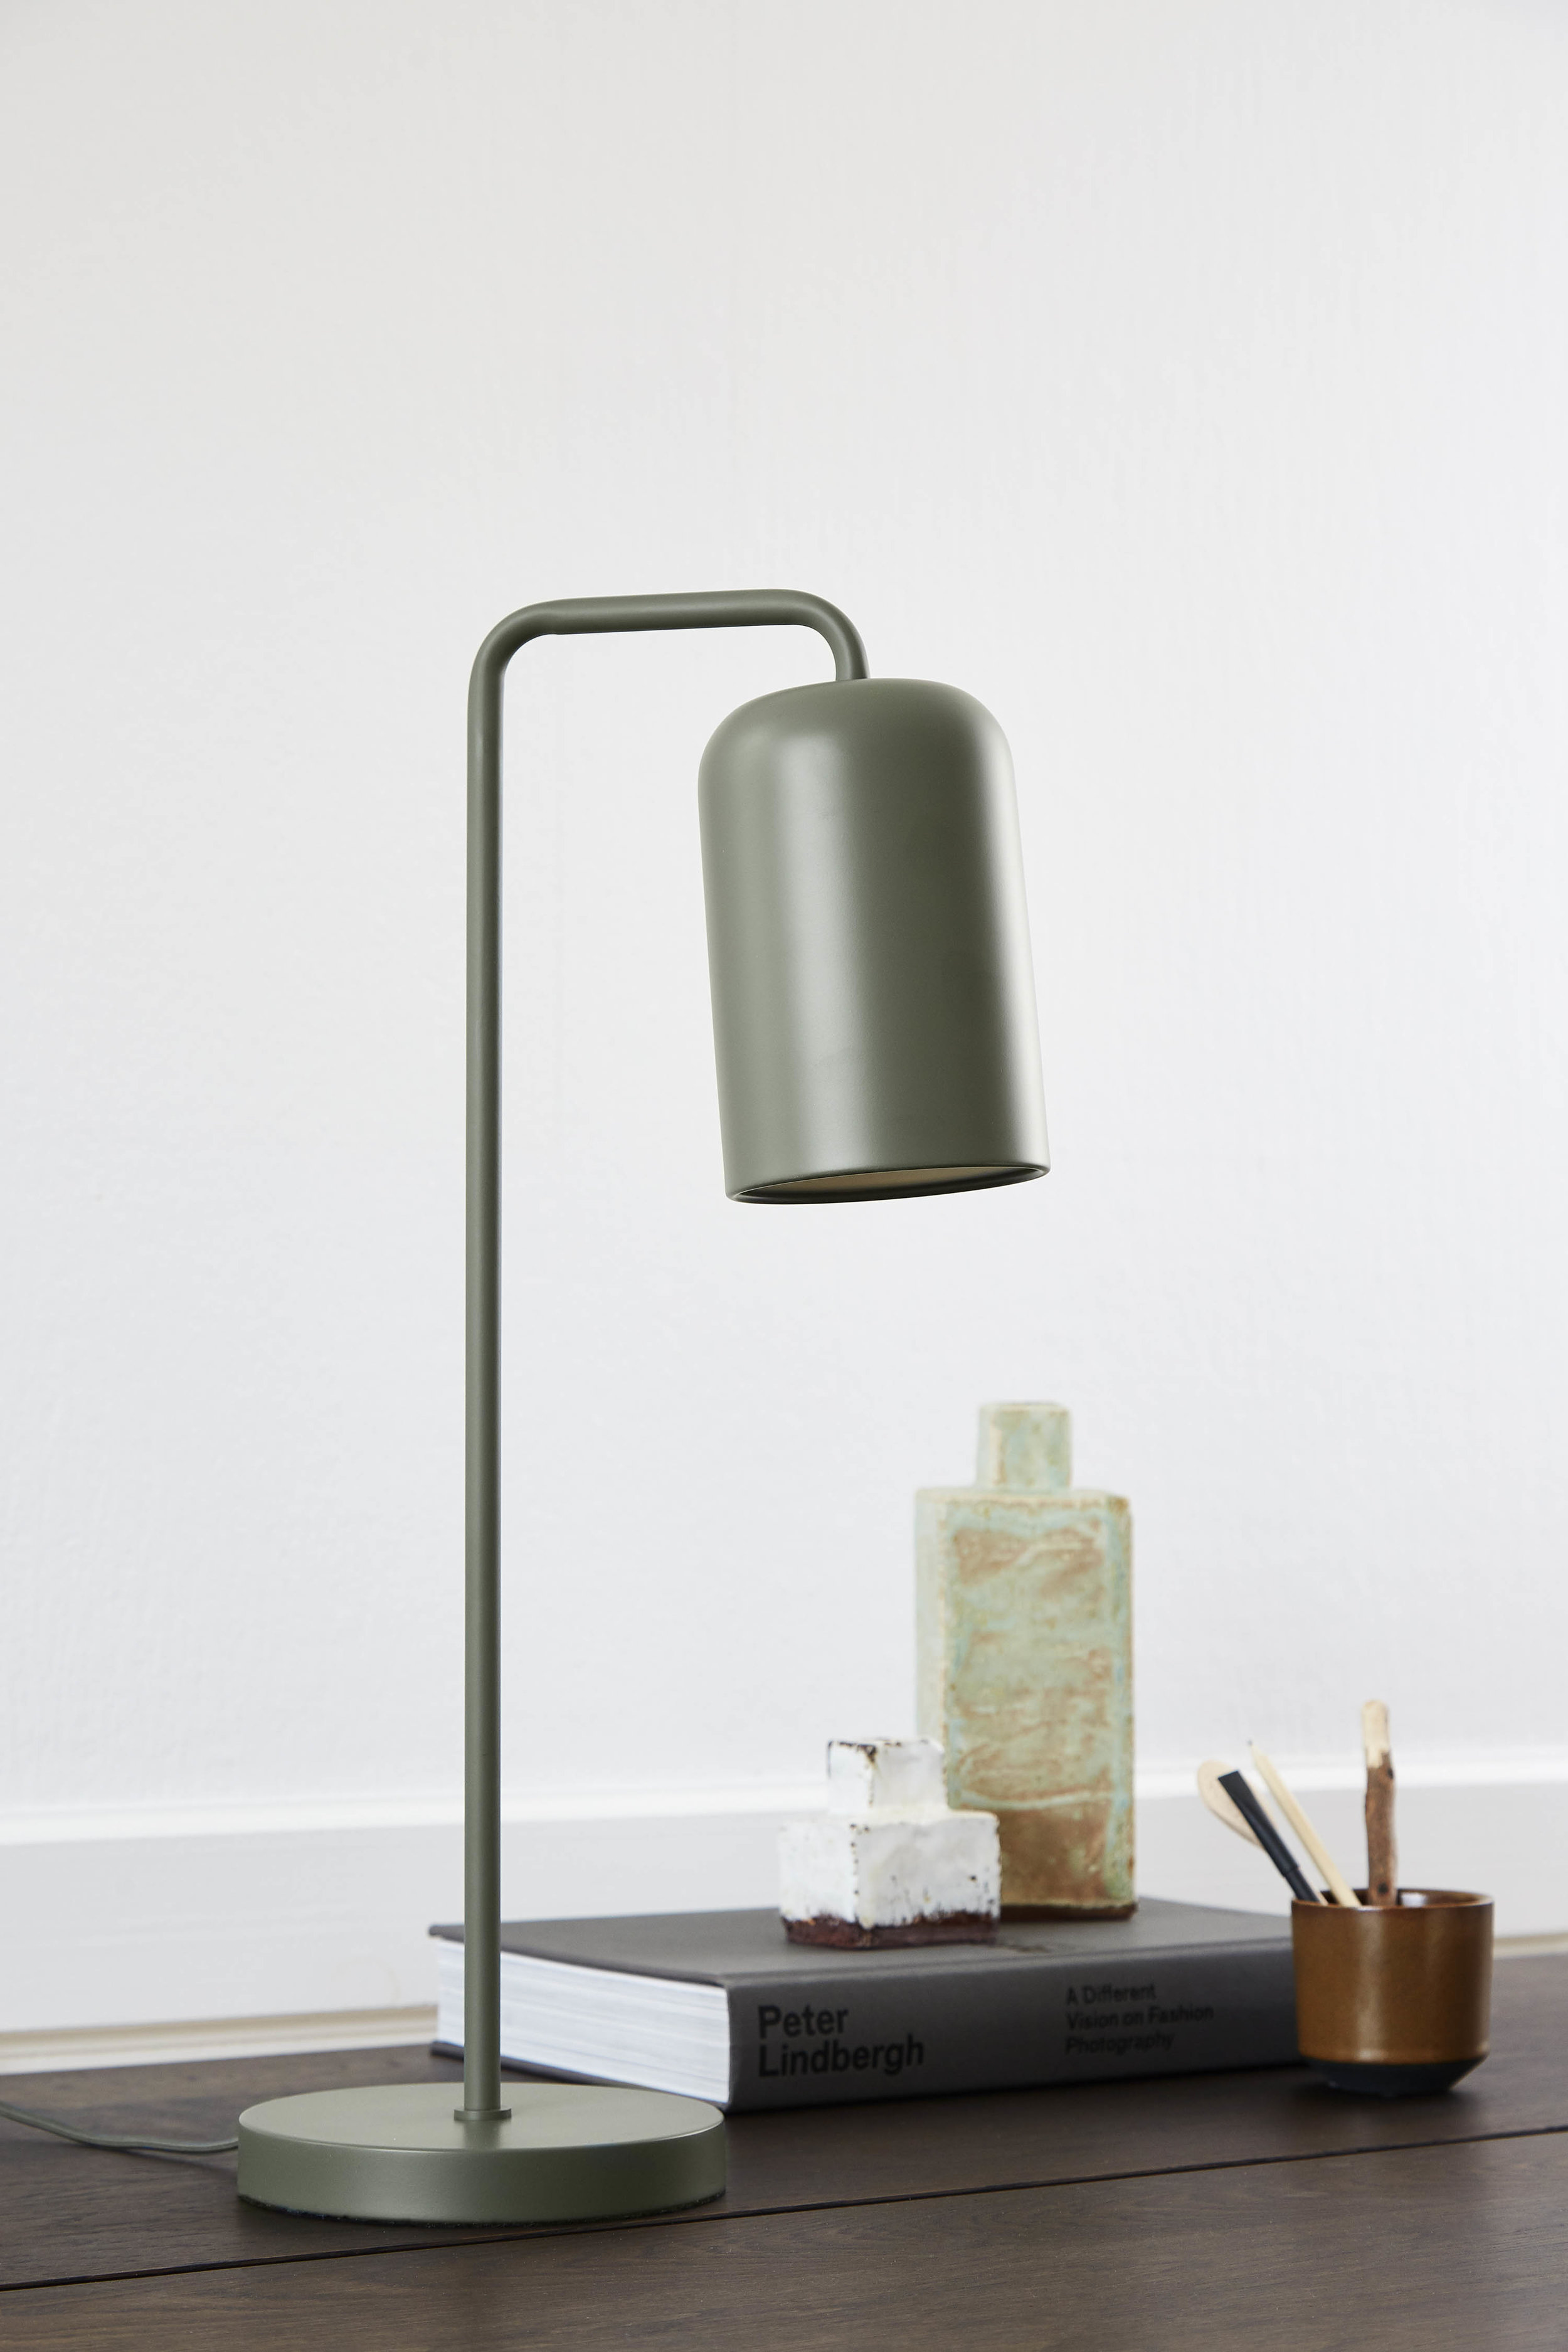 Chill table lamp green matt 2303 - lifestyle Teglgaardsvej 2303.jpg